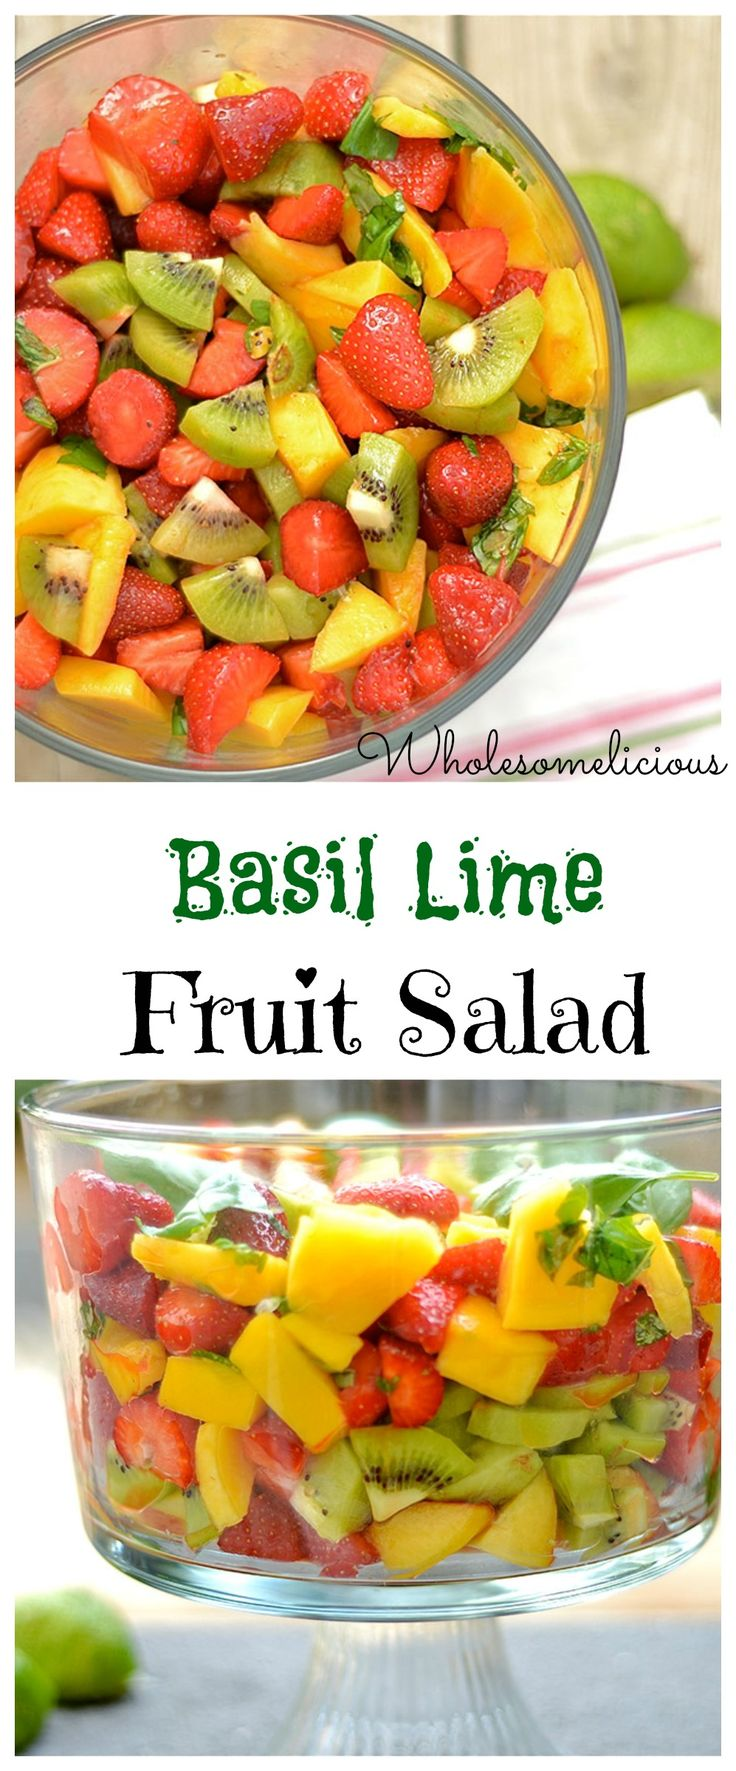 A perfect BBQ or picnic dish for the summer! Sweet summer fruits combine with a tangy basil lime syrup to dress up this gorgeous salad!